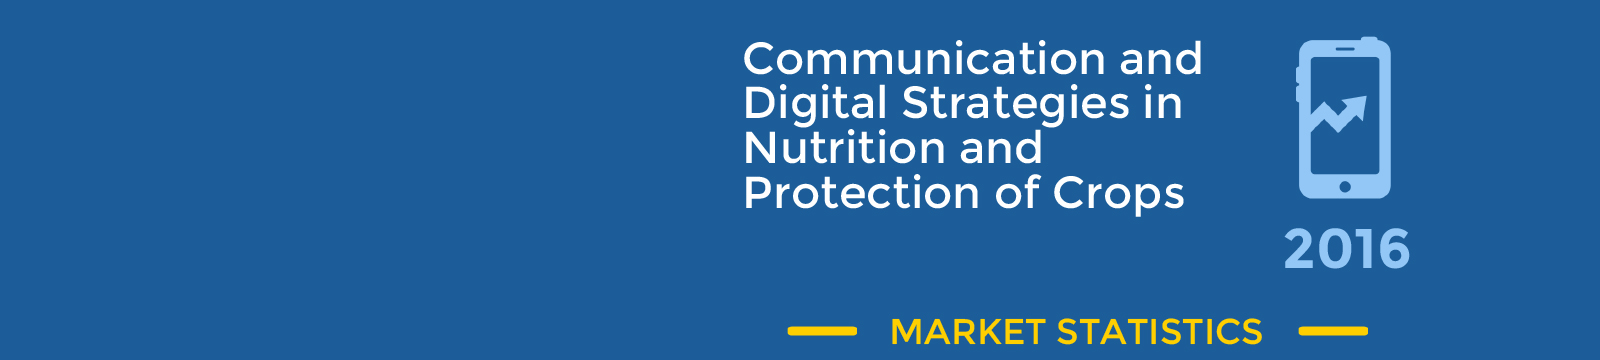 Get to Know the Online Communication Practices of the Crop Nutrition and Protection Sector